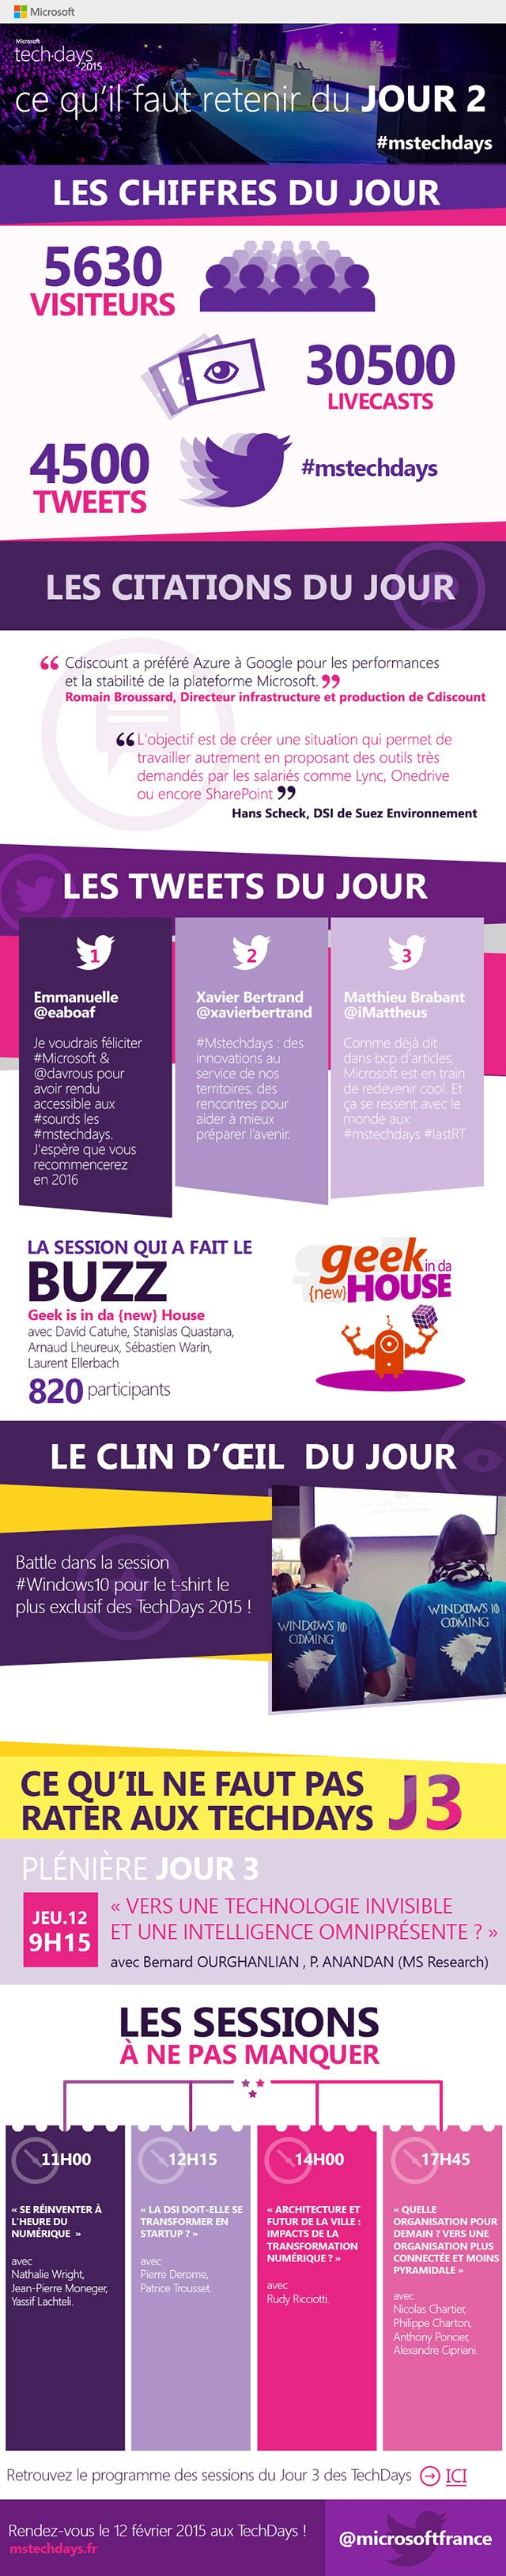 Infographie TechDays jour 2